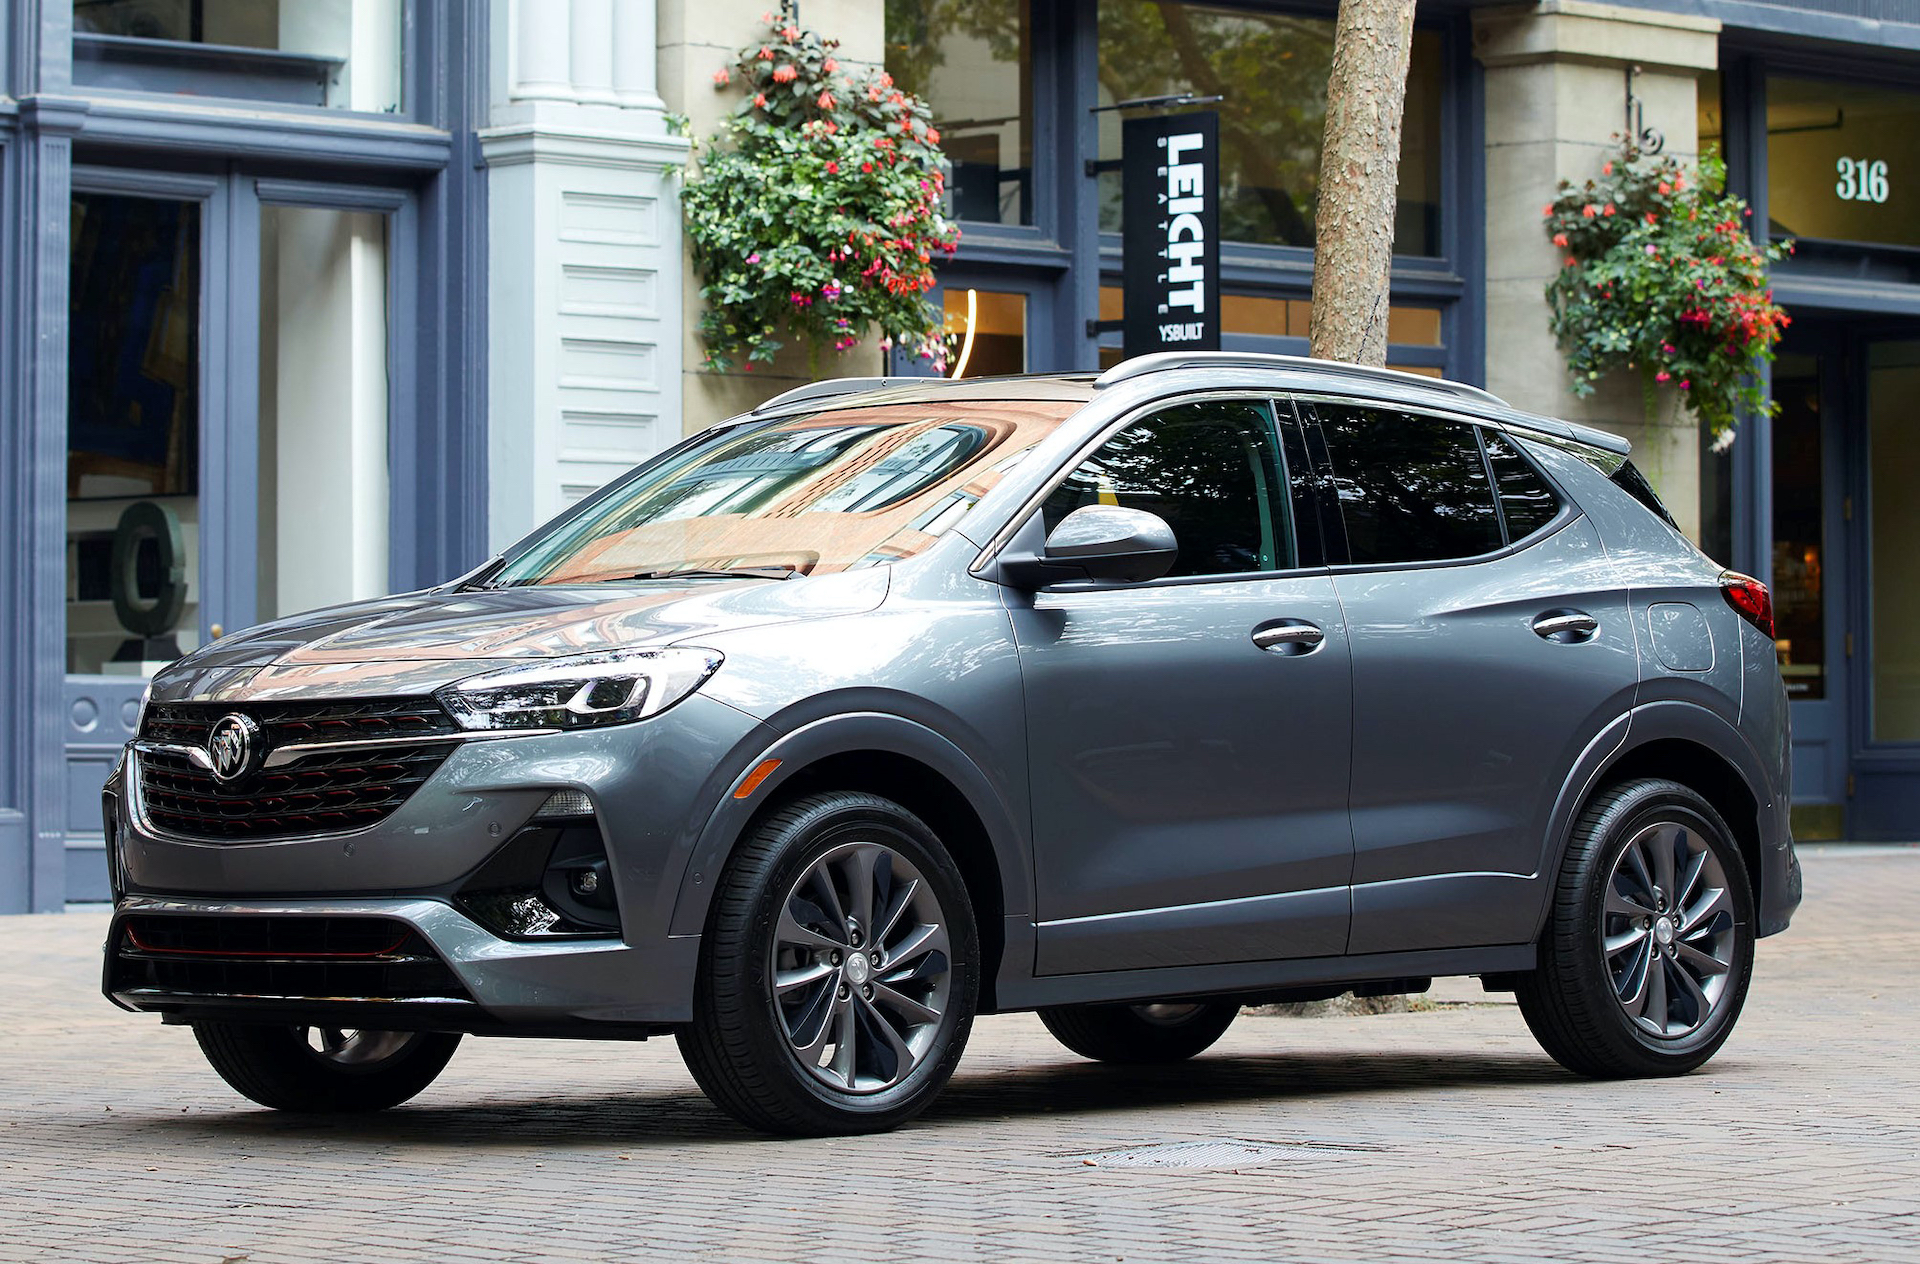 2021 Buick Encore Review, Ratings, Specs, Prices, And Photos 2021 Buick Encore Used, Updates, Wheels